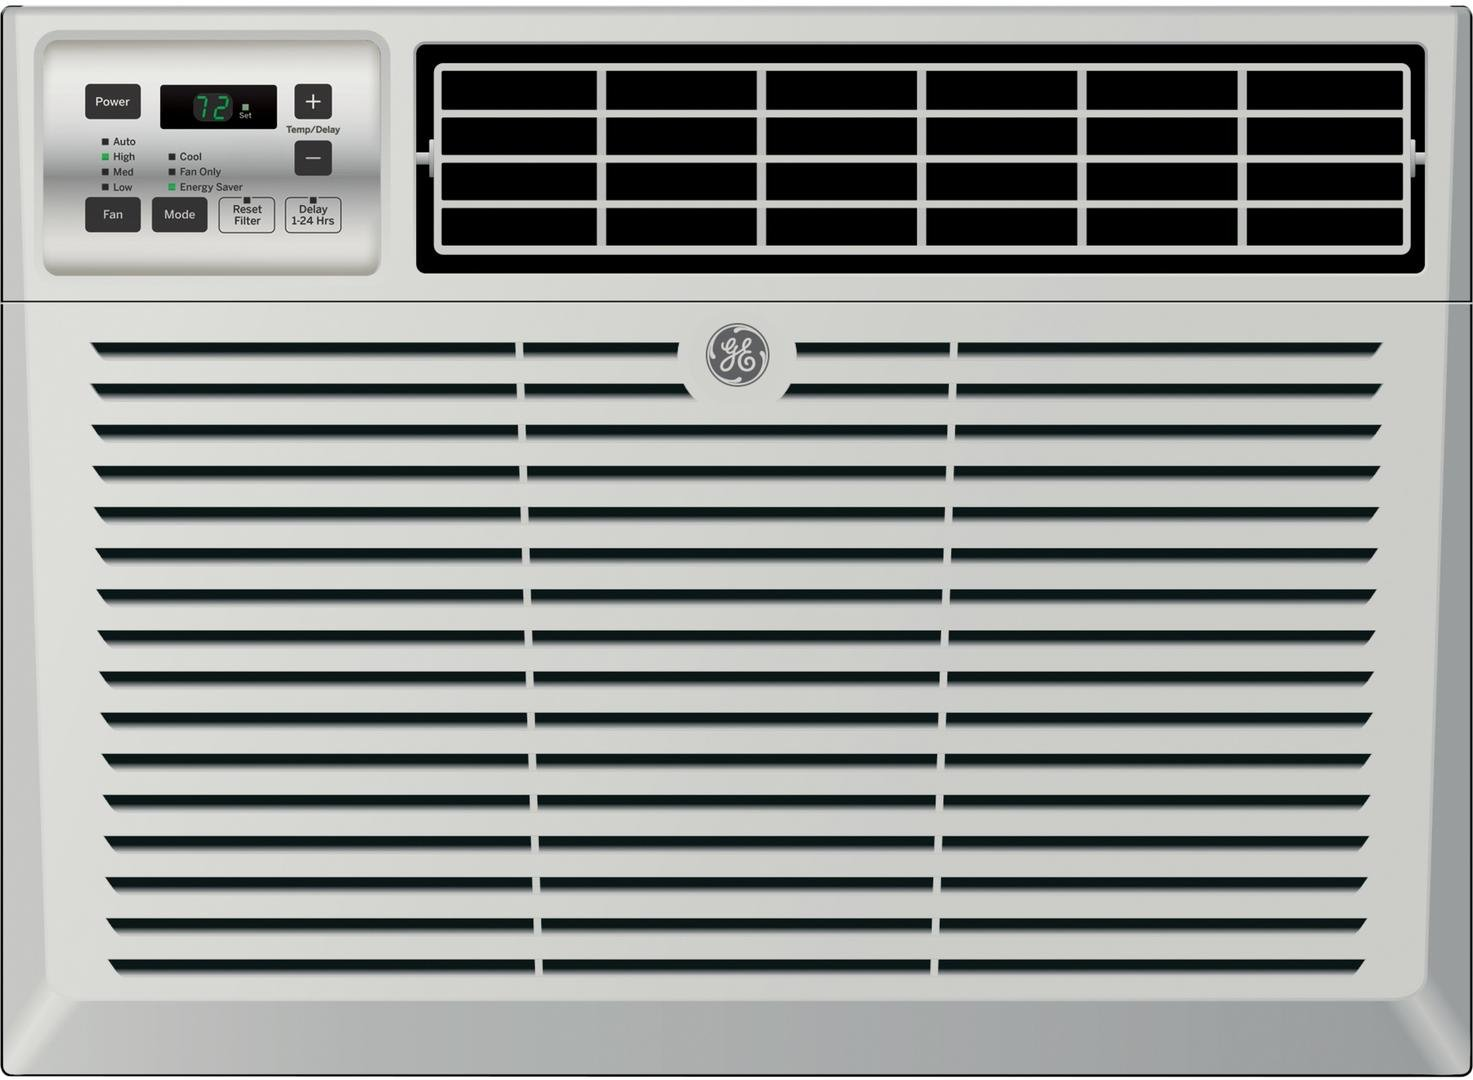 GE AEM08LX Fits Windows 24 to 38 W x 13-1 2 H MIN. Window Air Conditioner with 8000 Cooling BTU, Energy Star Qualified in Light Cool Gray